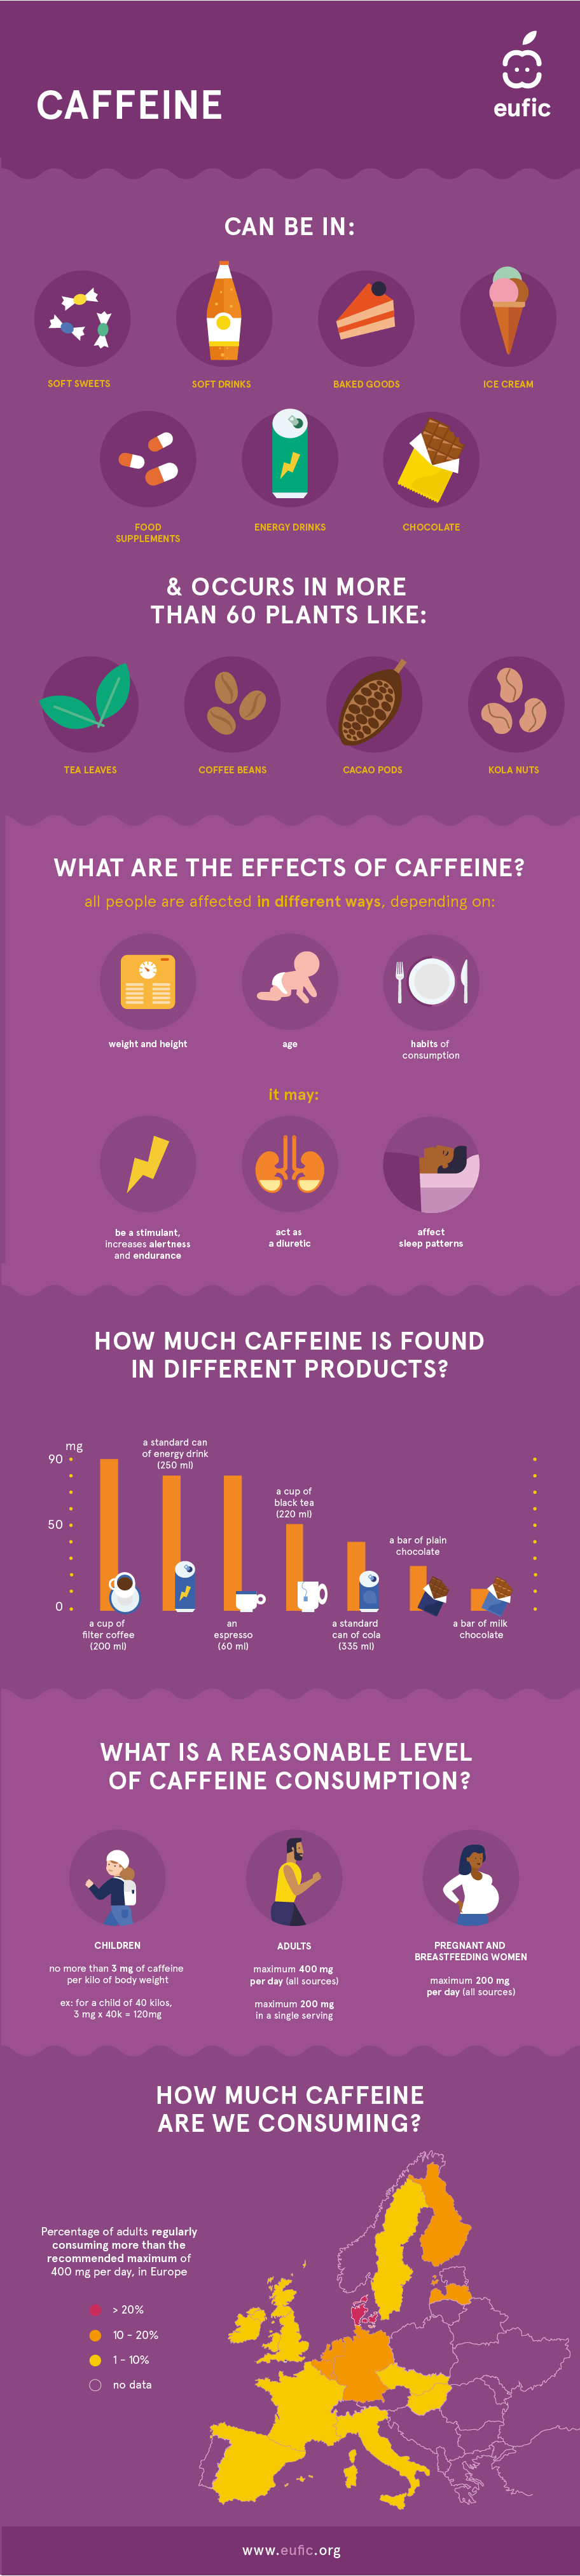 Infographic about caffeine